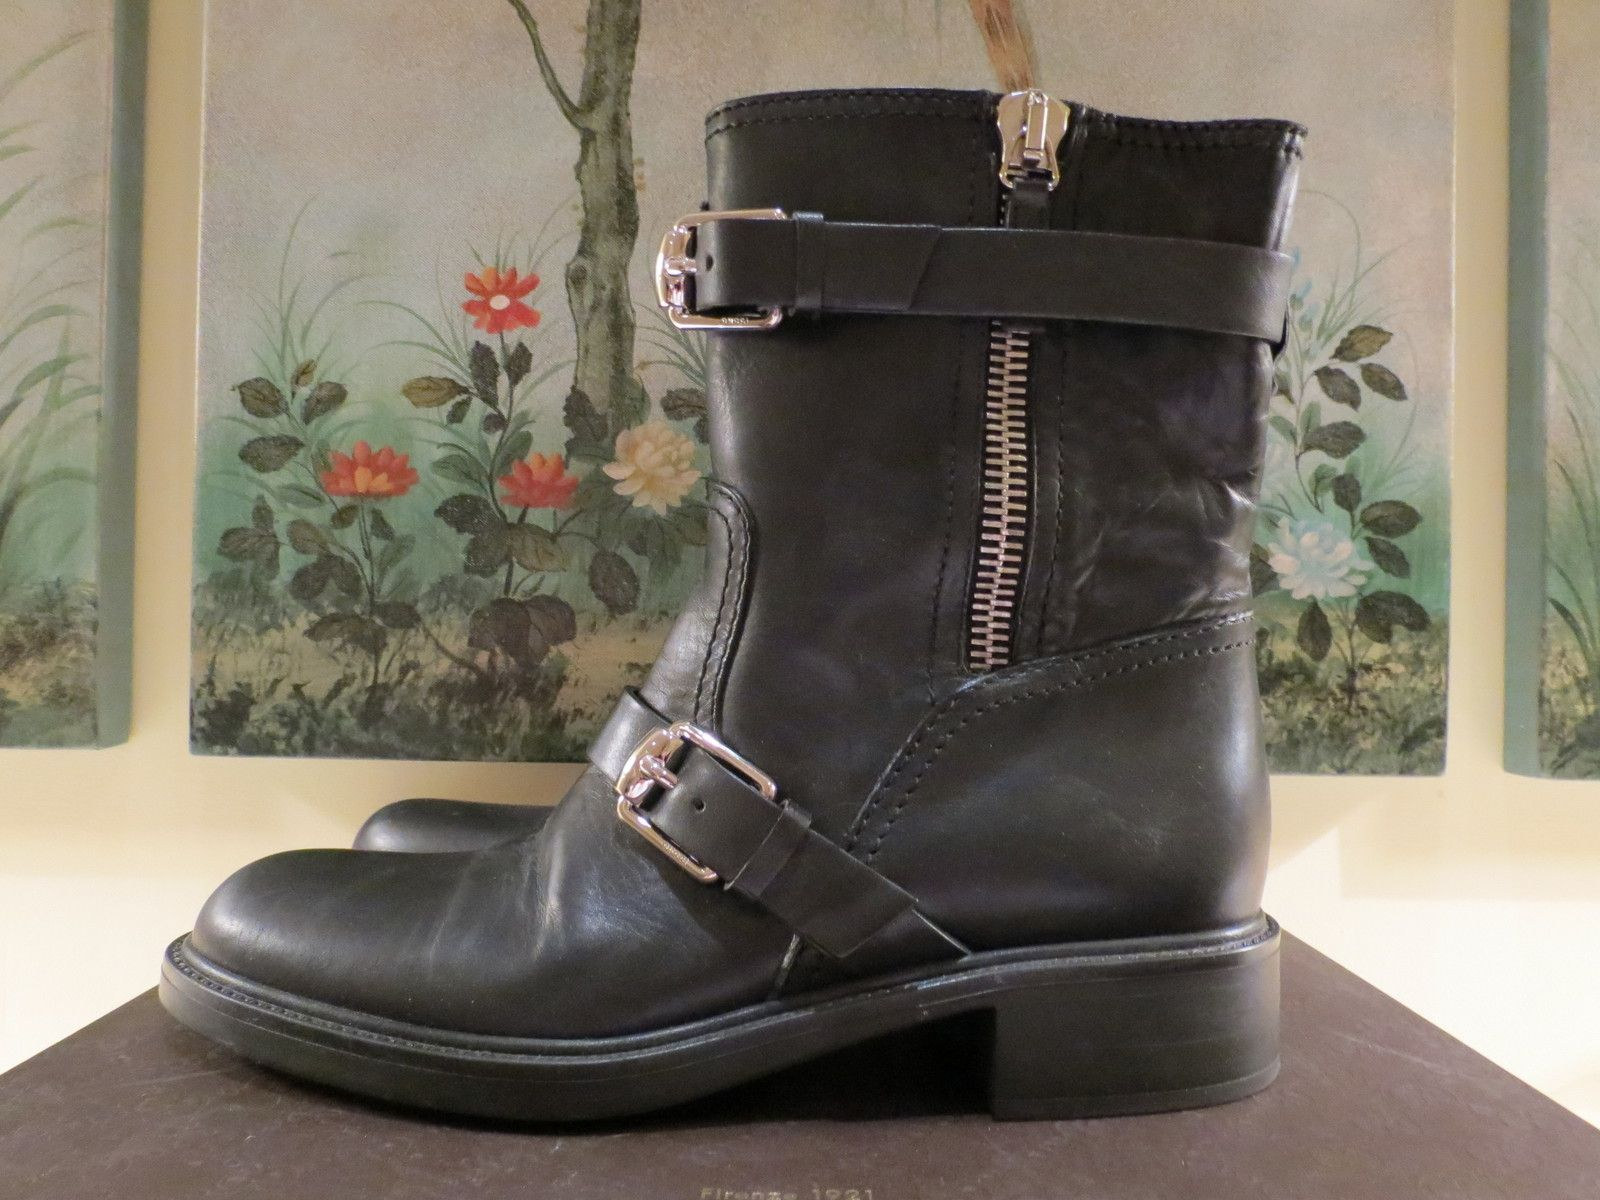 Gucci Moto Boots SOLD for $289.00 Ebay